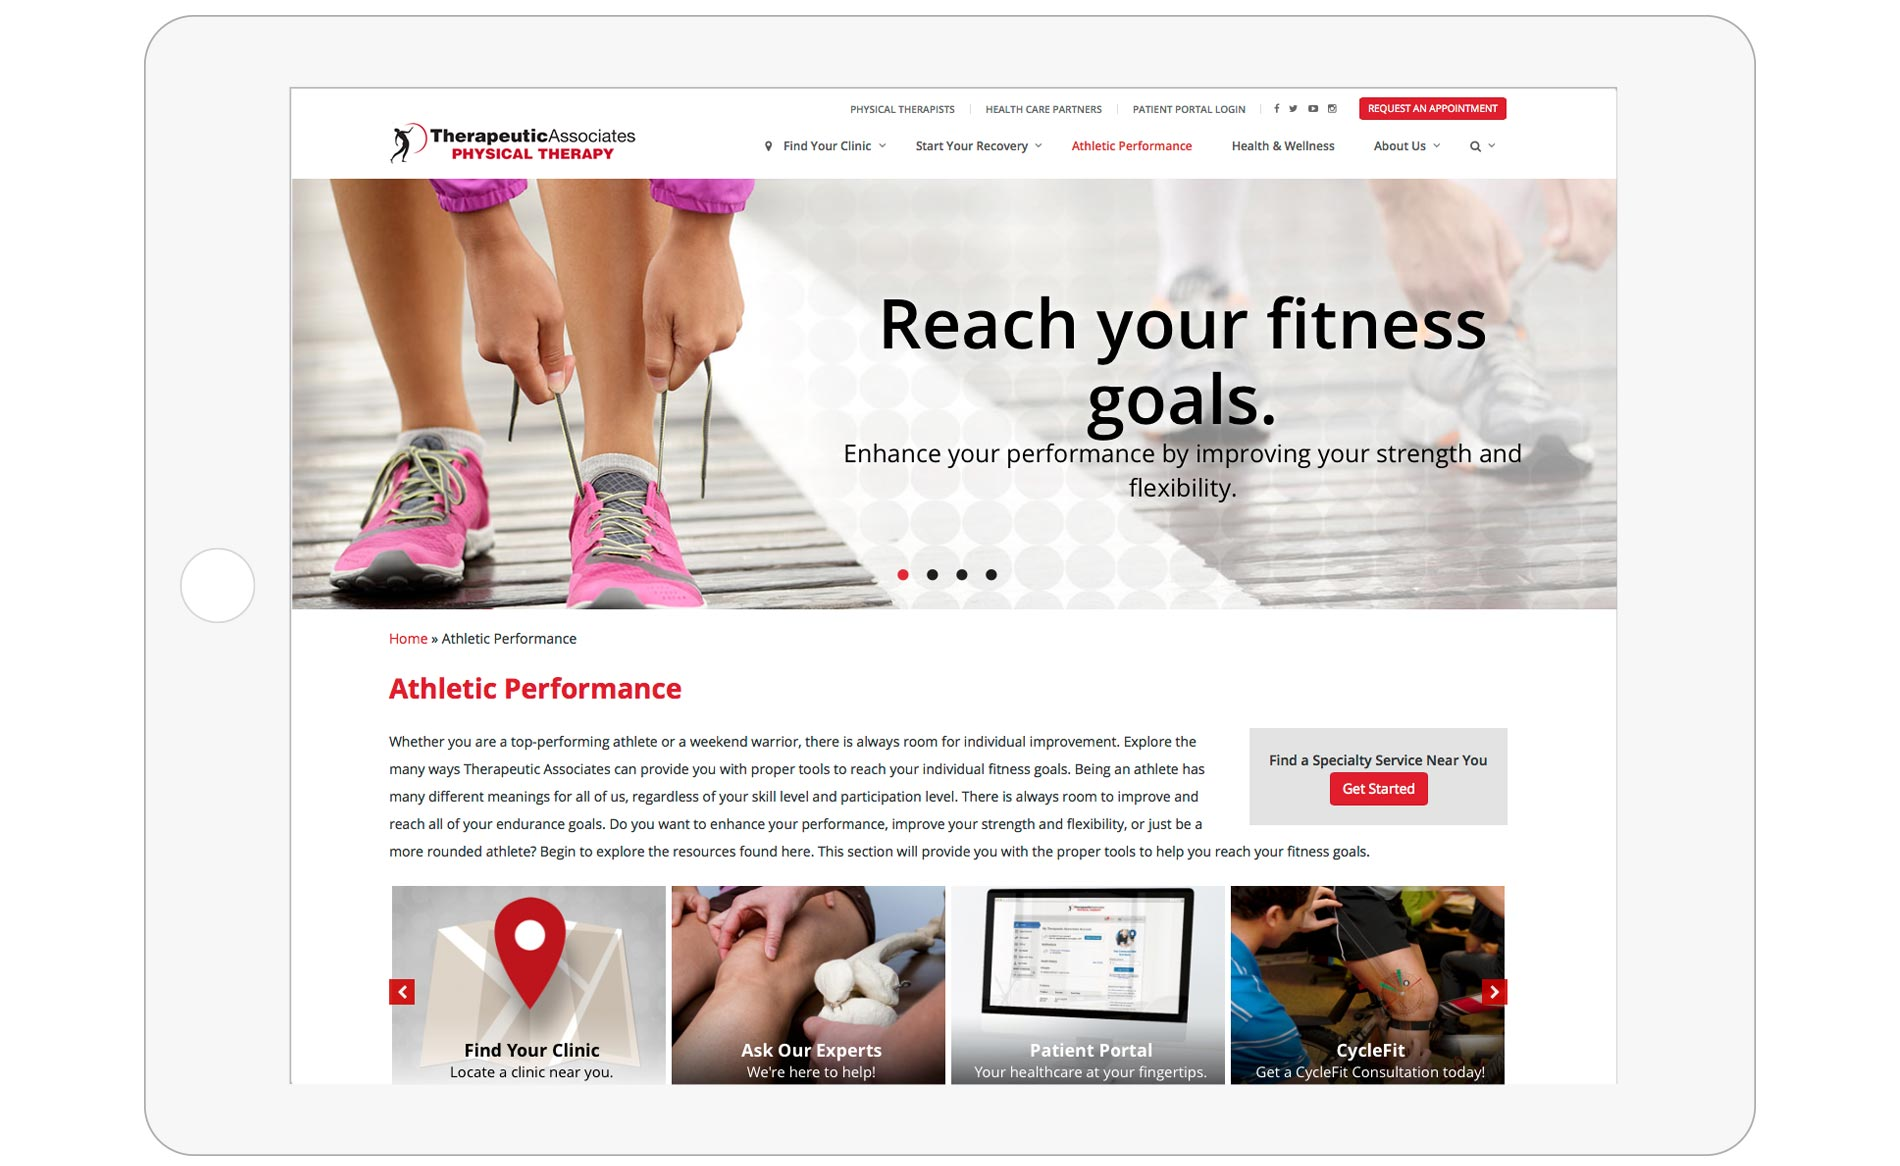 Therapeutic Associates Web Design - Athletic Performance